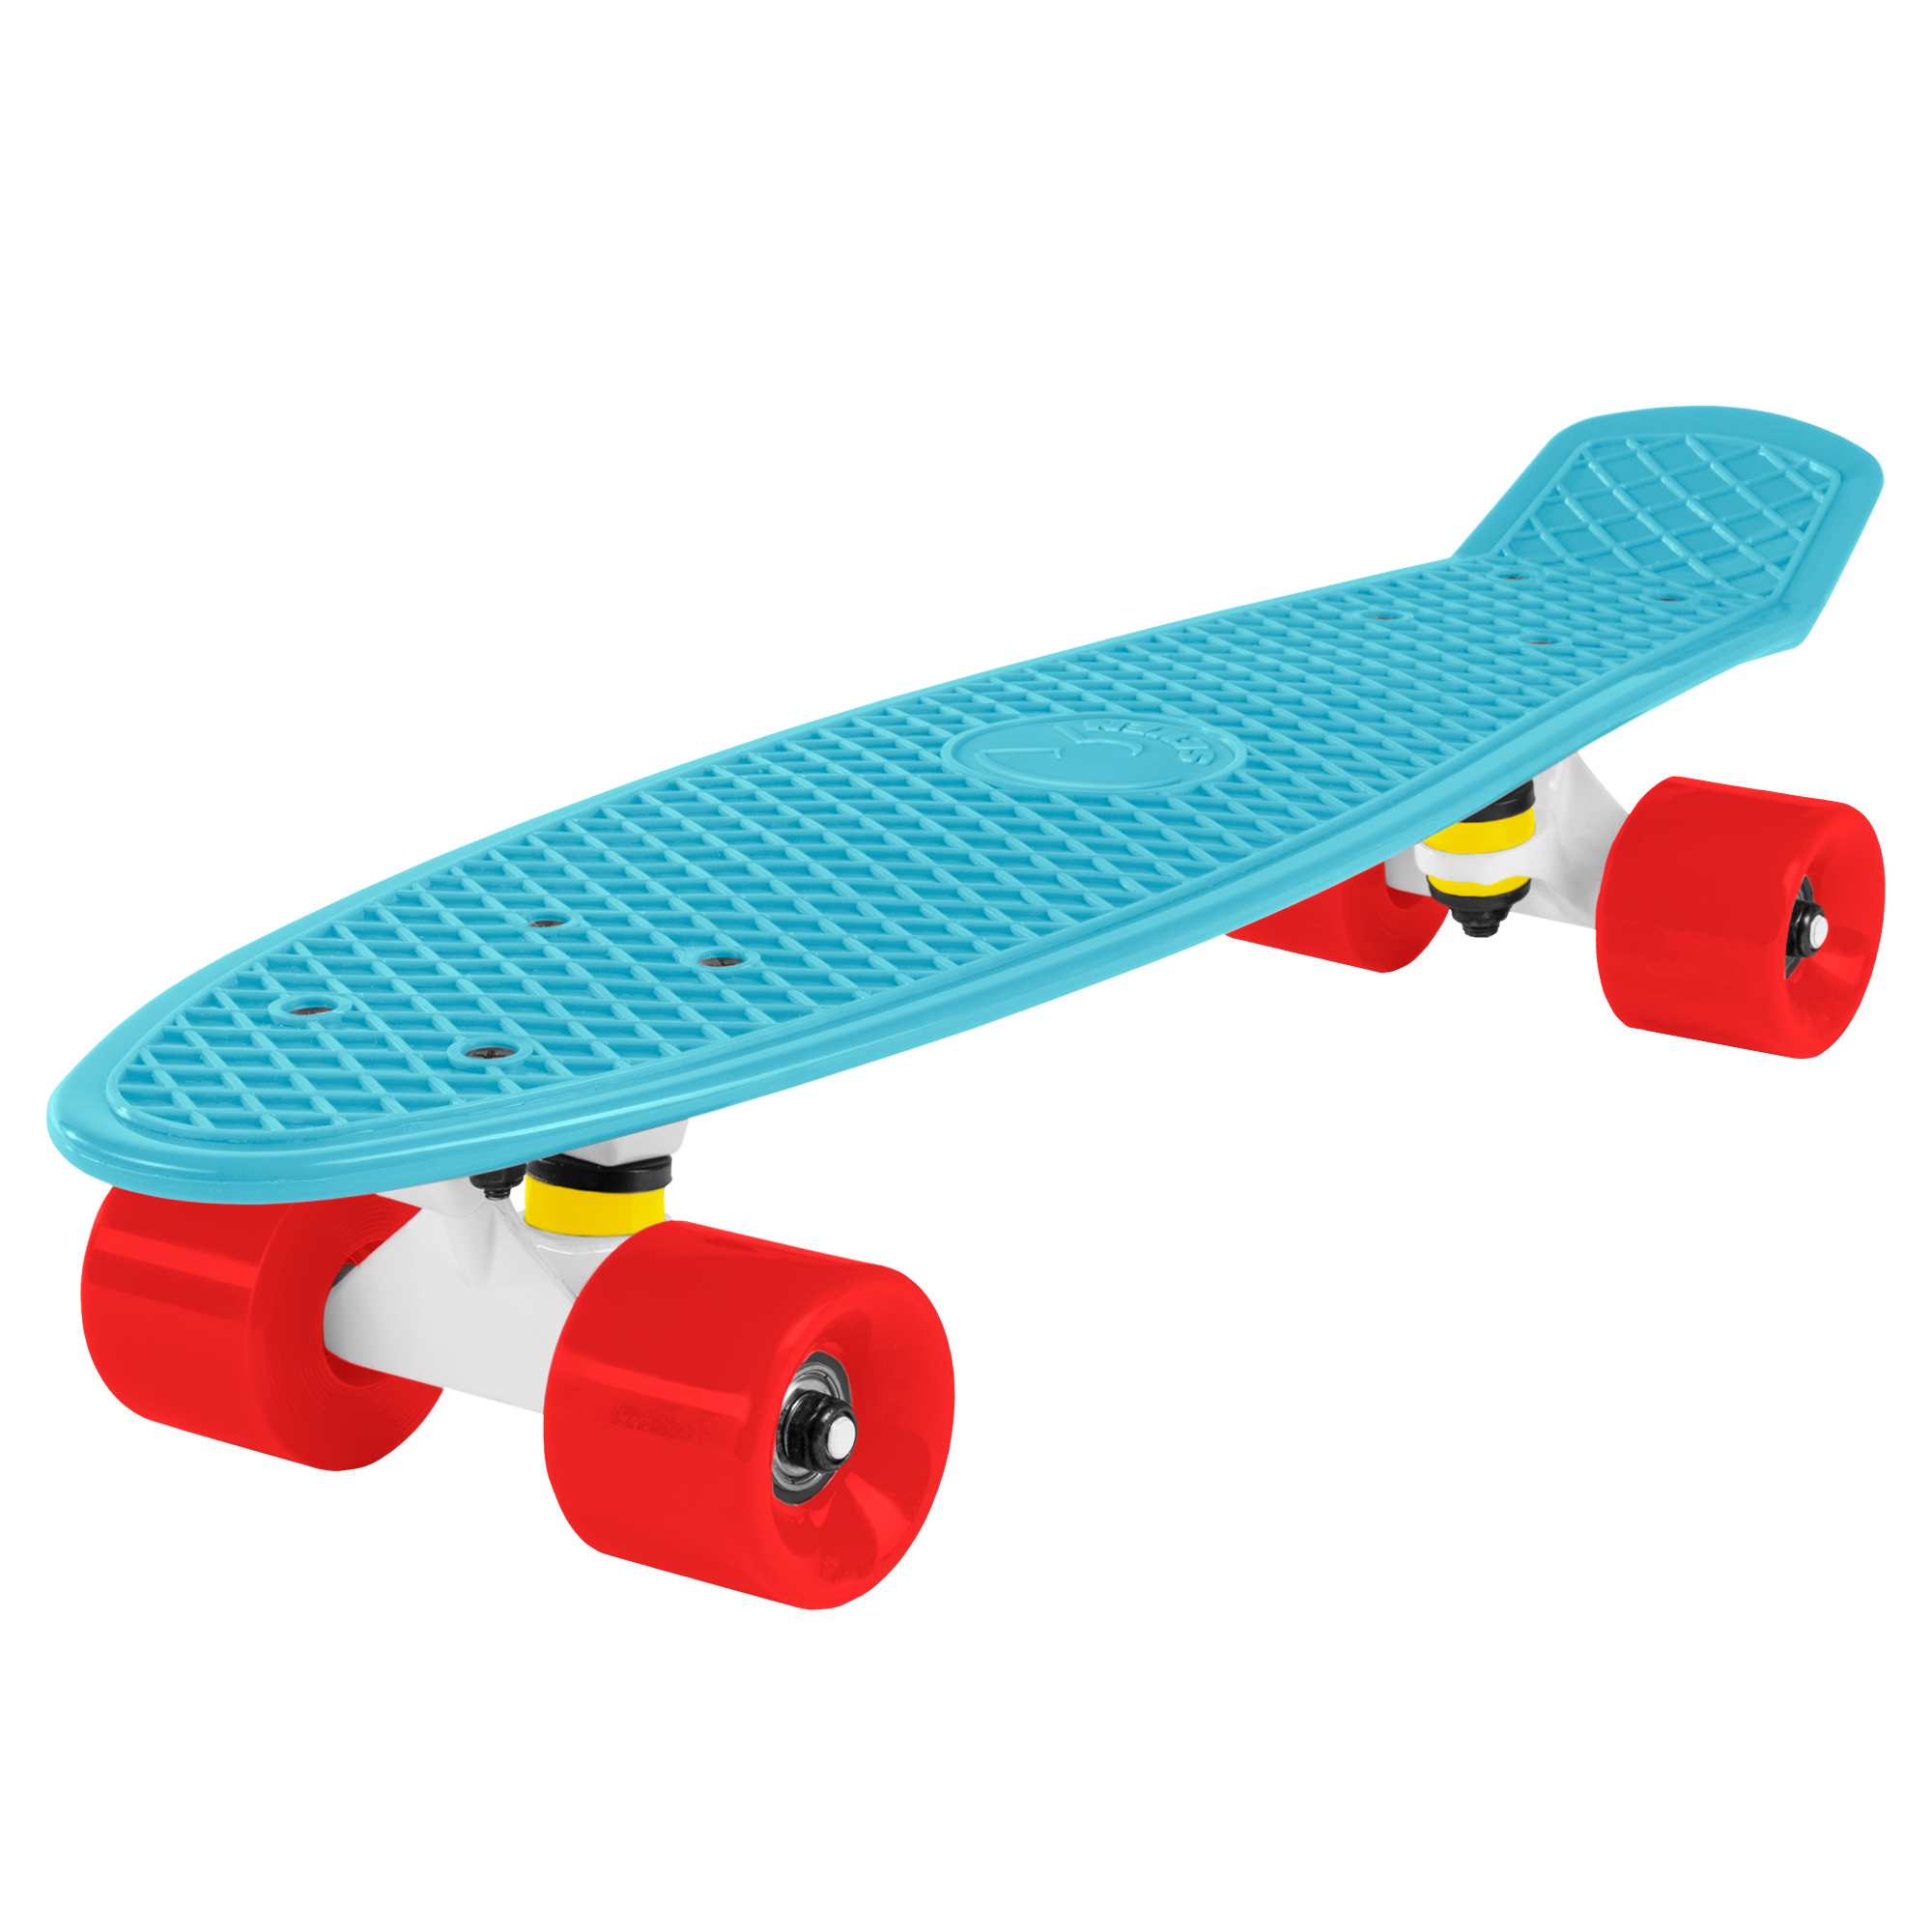 Cal 7 Complete Mini Cruiser Skateboard, 22 Inch Plastic in Retro Design (Lotus)